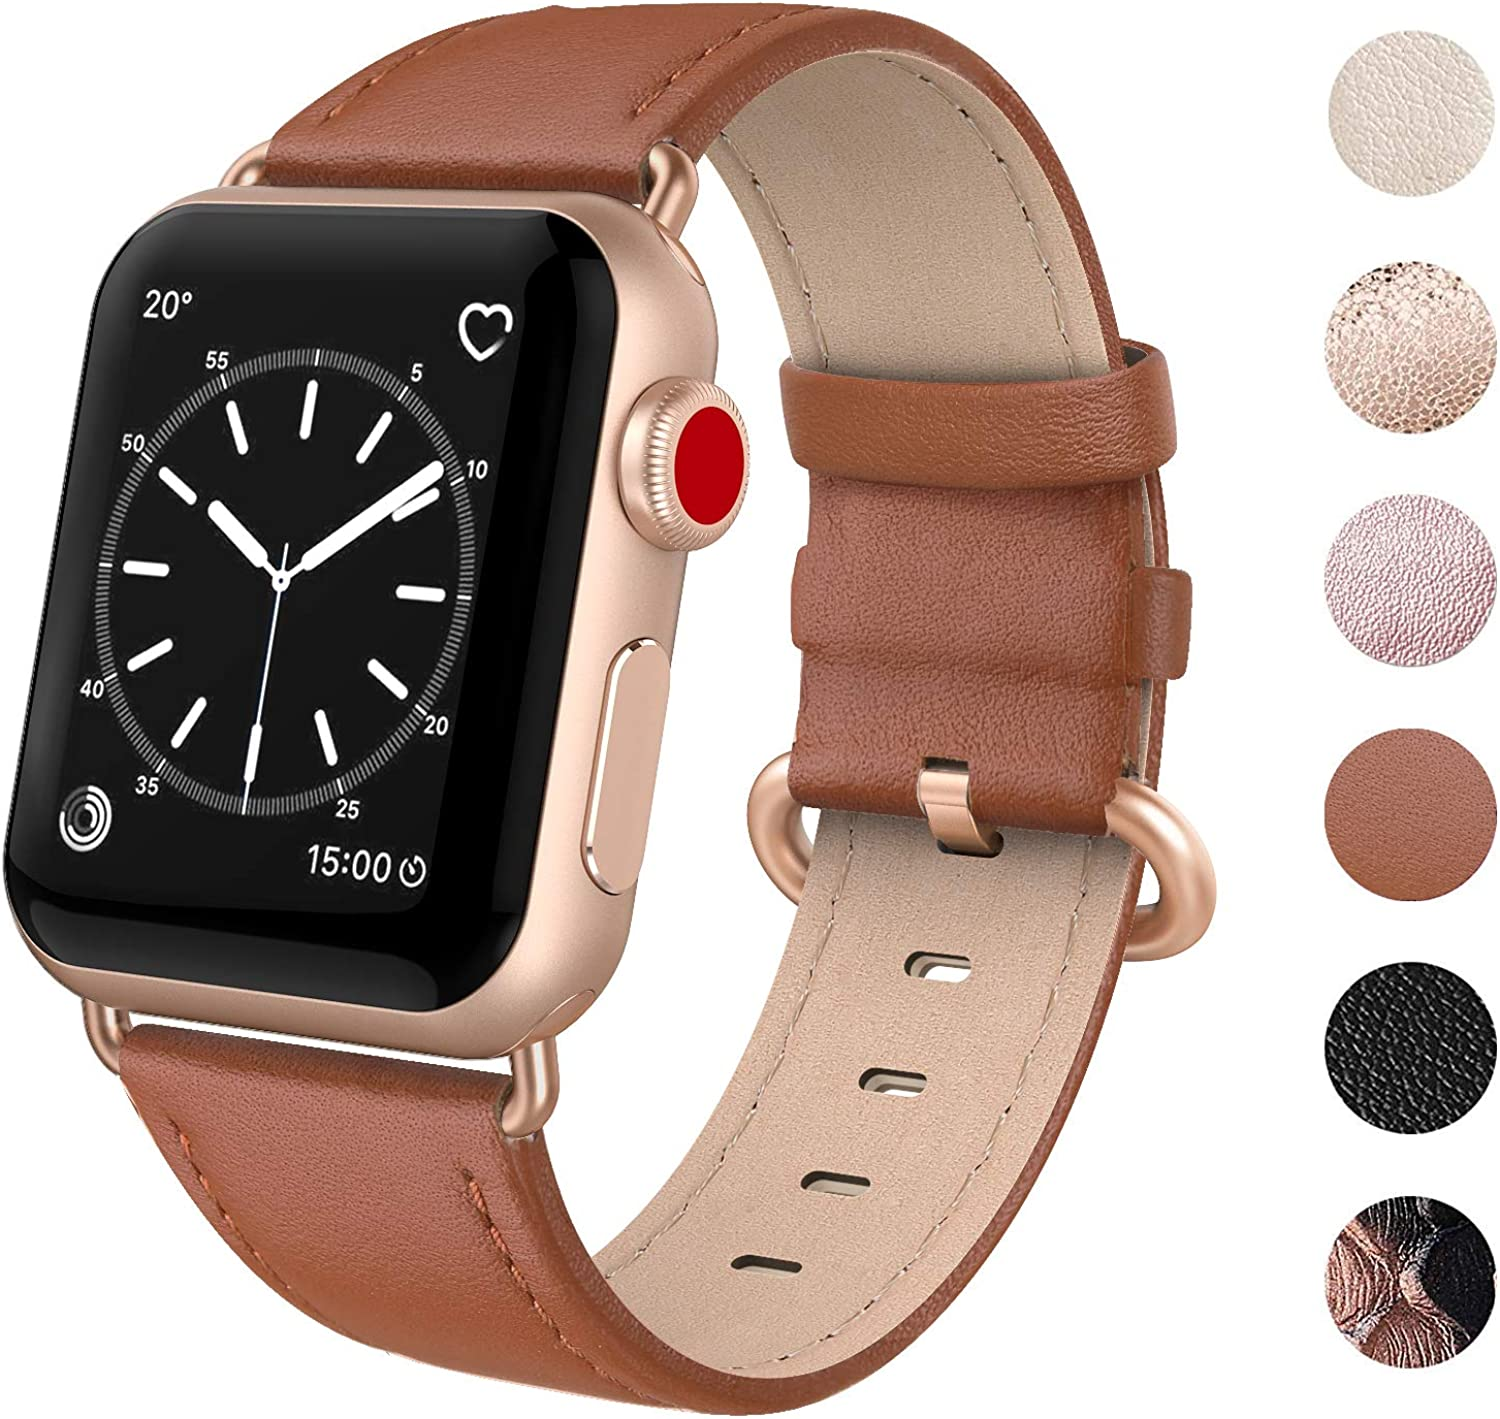 Top 10 Leather Gold Apple Watch Band 38 Mm 2